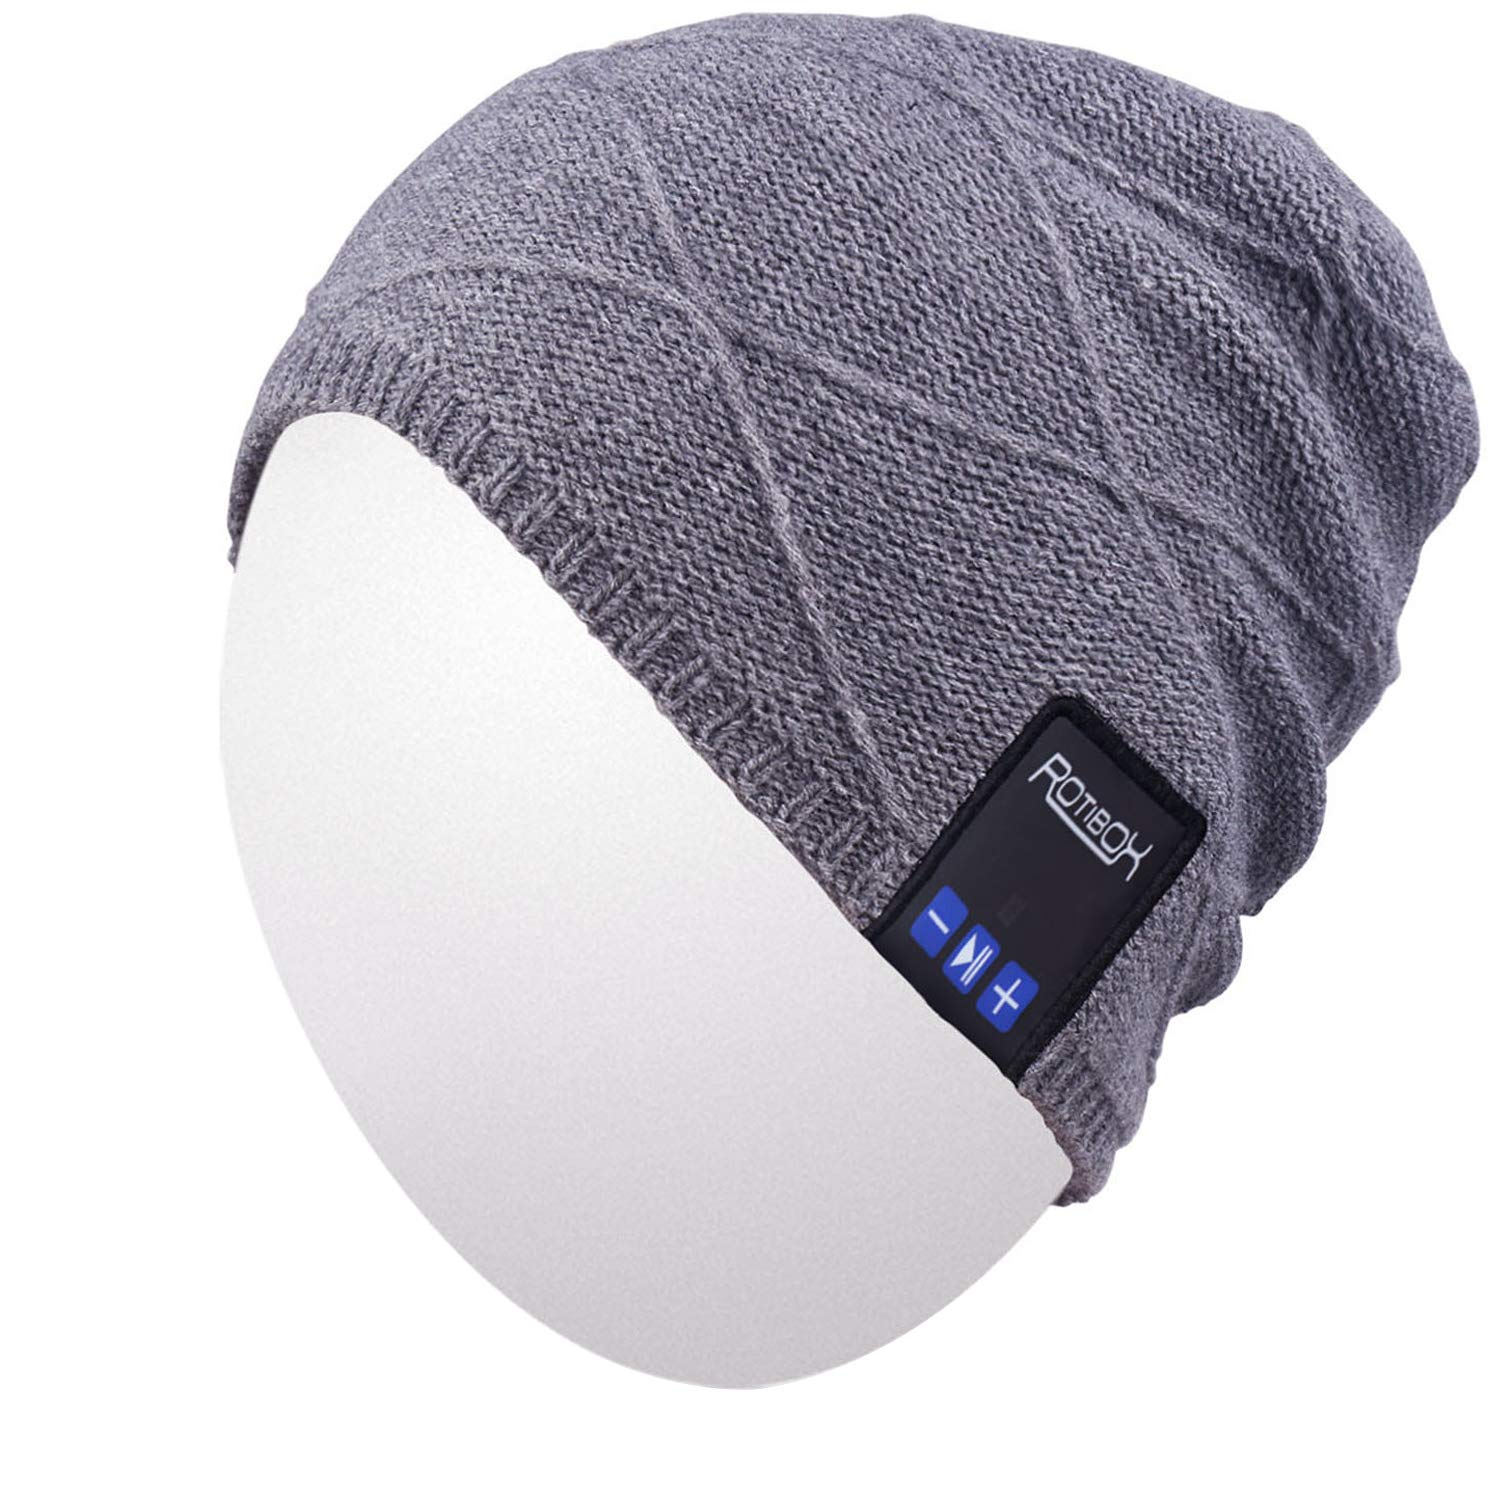 Qshell Unisex Adult Bluetooth Beanie Hat Trendy Soft Warm Short Audio Music Cap with Wireless Headphone Headset Speaker Mic Hands-Free, for Winter Outdoor Sport Skiing Snowboard - Gray